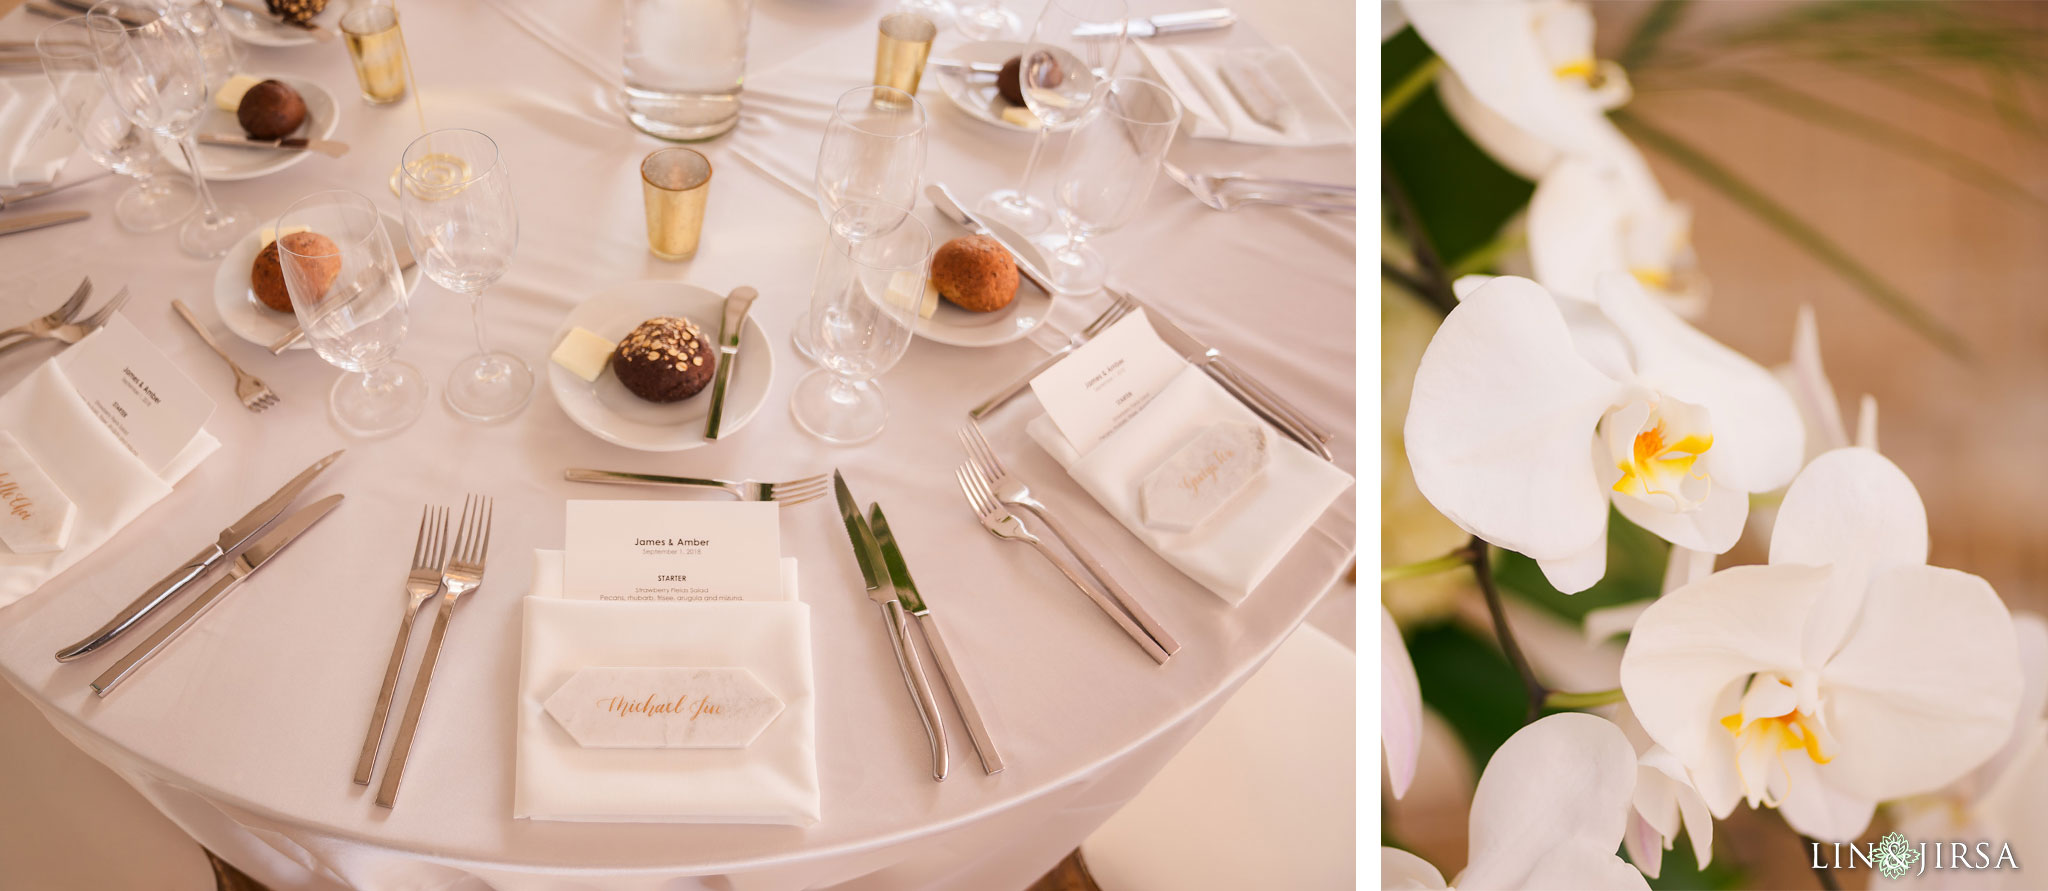 32 segerstrom center for the arts costa mesa wedding photography